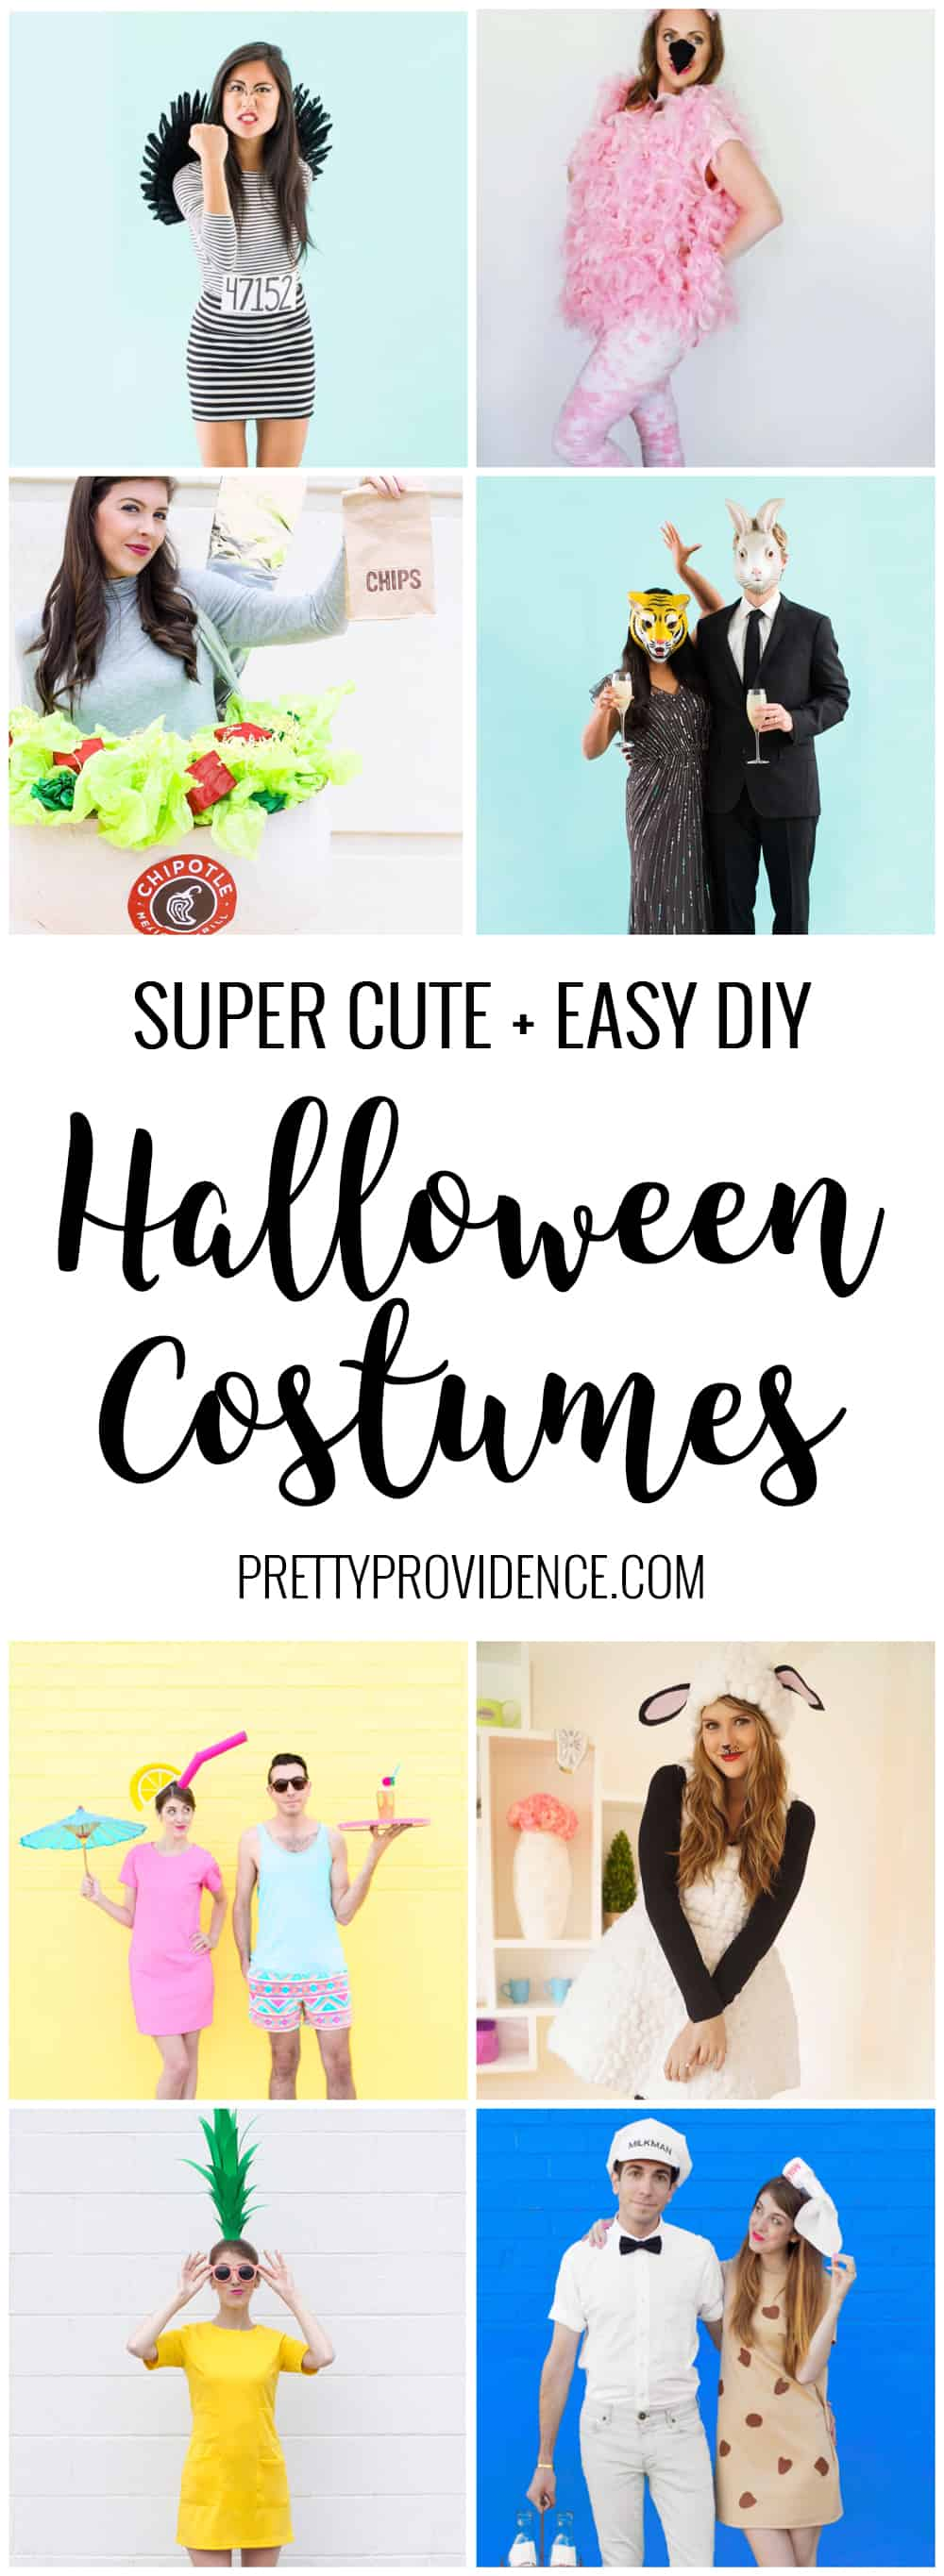 I am loving all these fun and easy DIY Halloween costume ideas! Adorable and affordable! They just can't be beat.